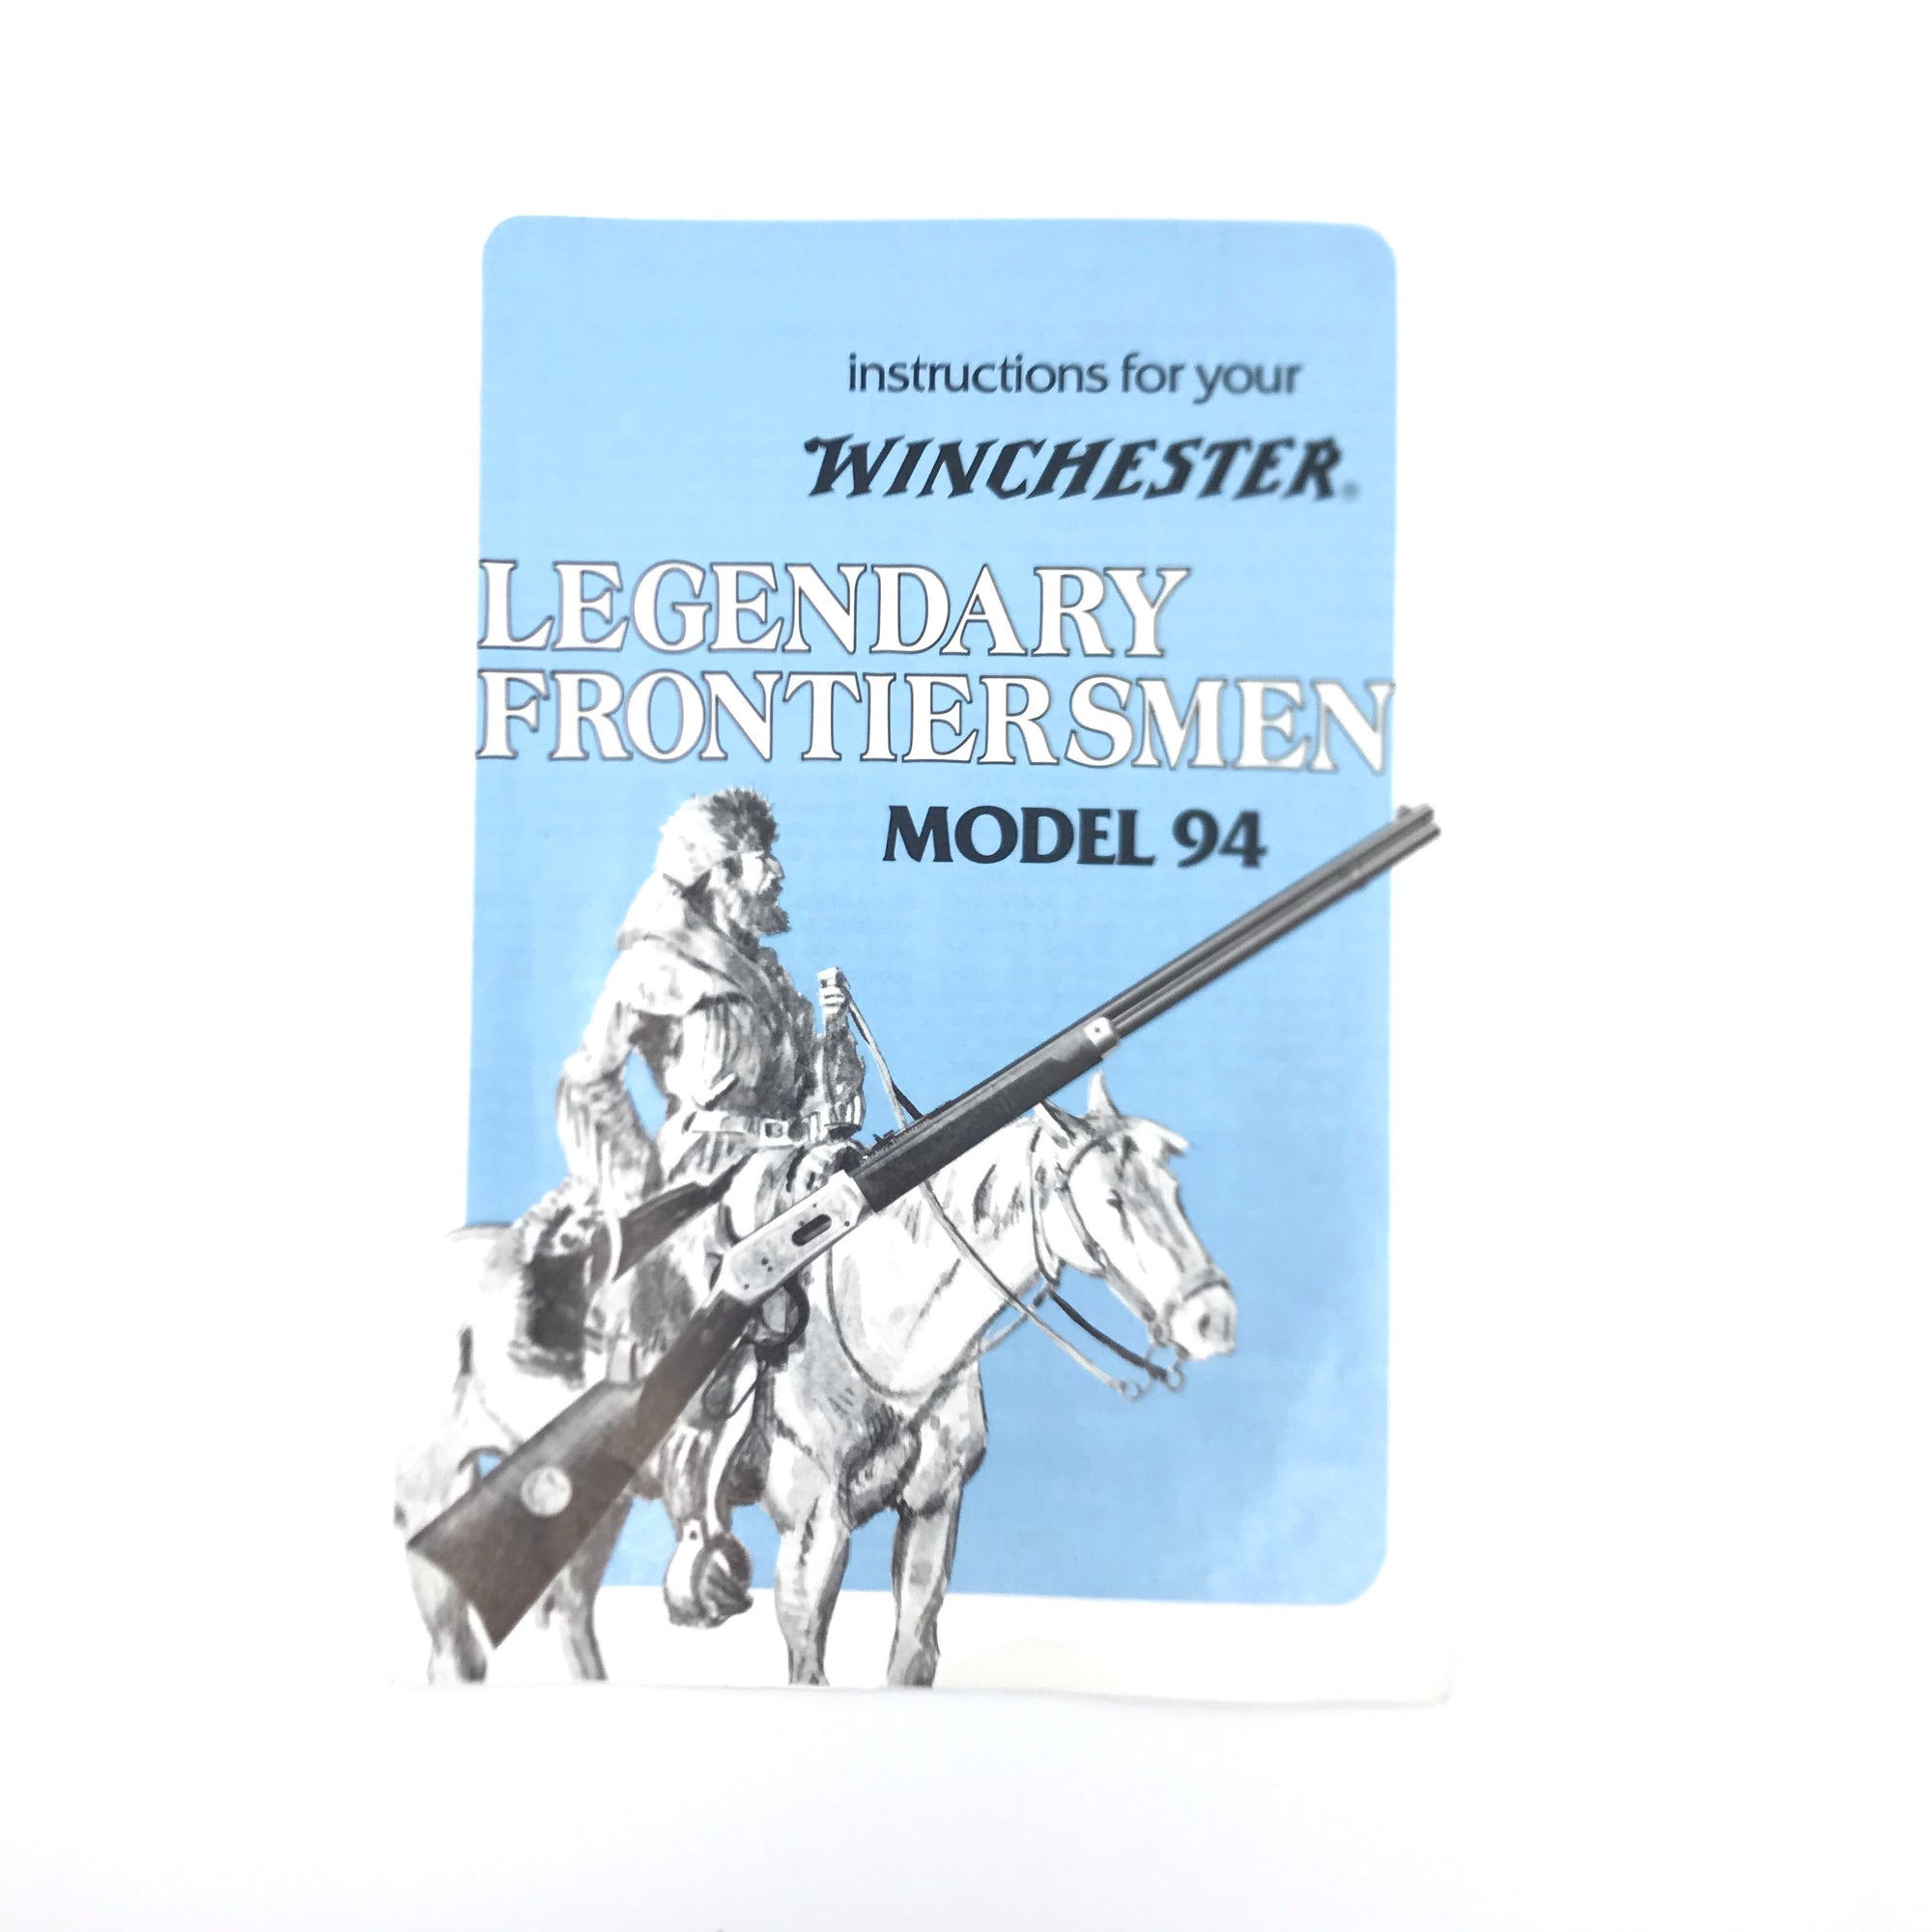 Instructions for Winchester Legendary Frontiersmen Model 94